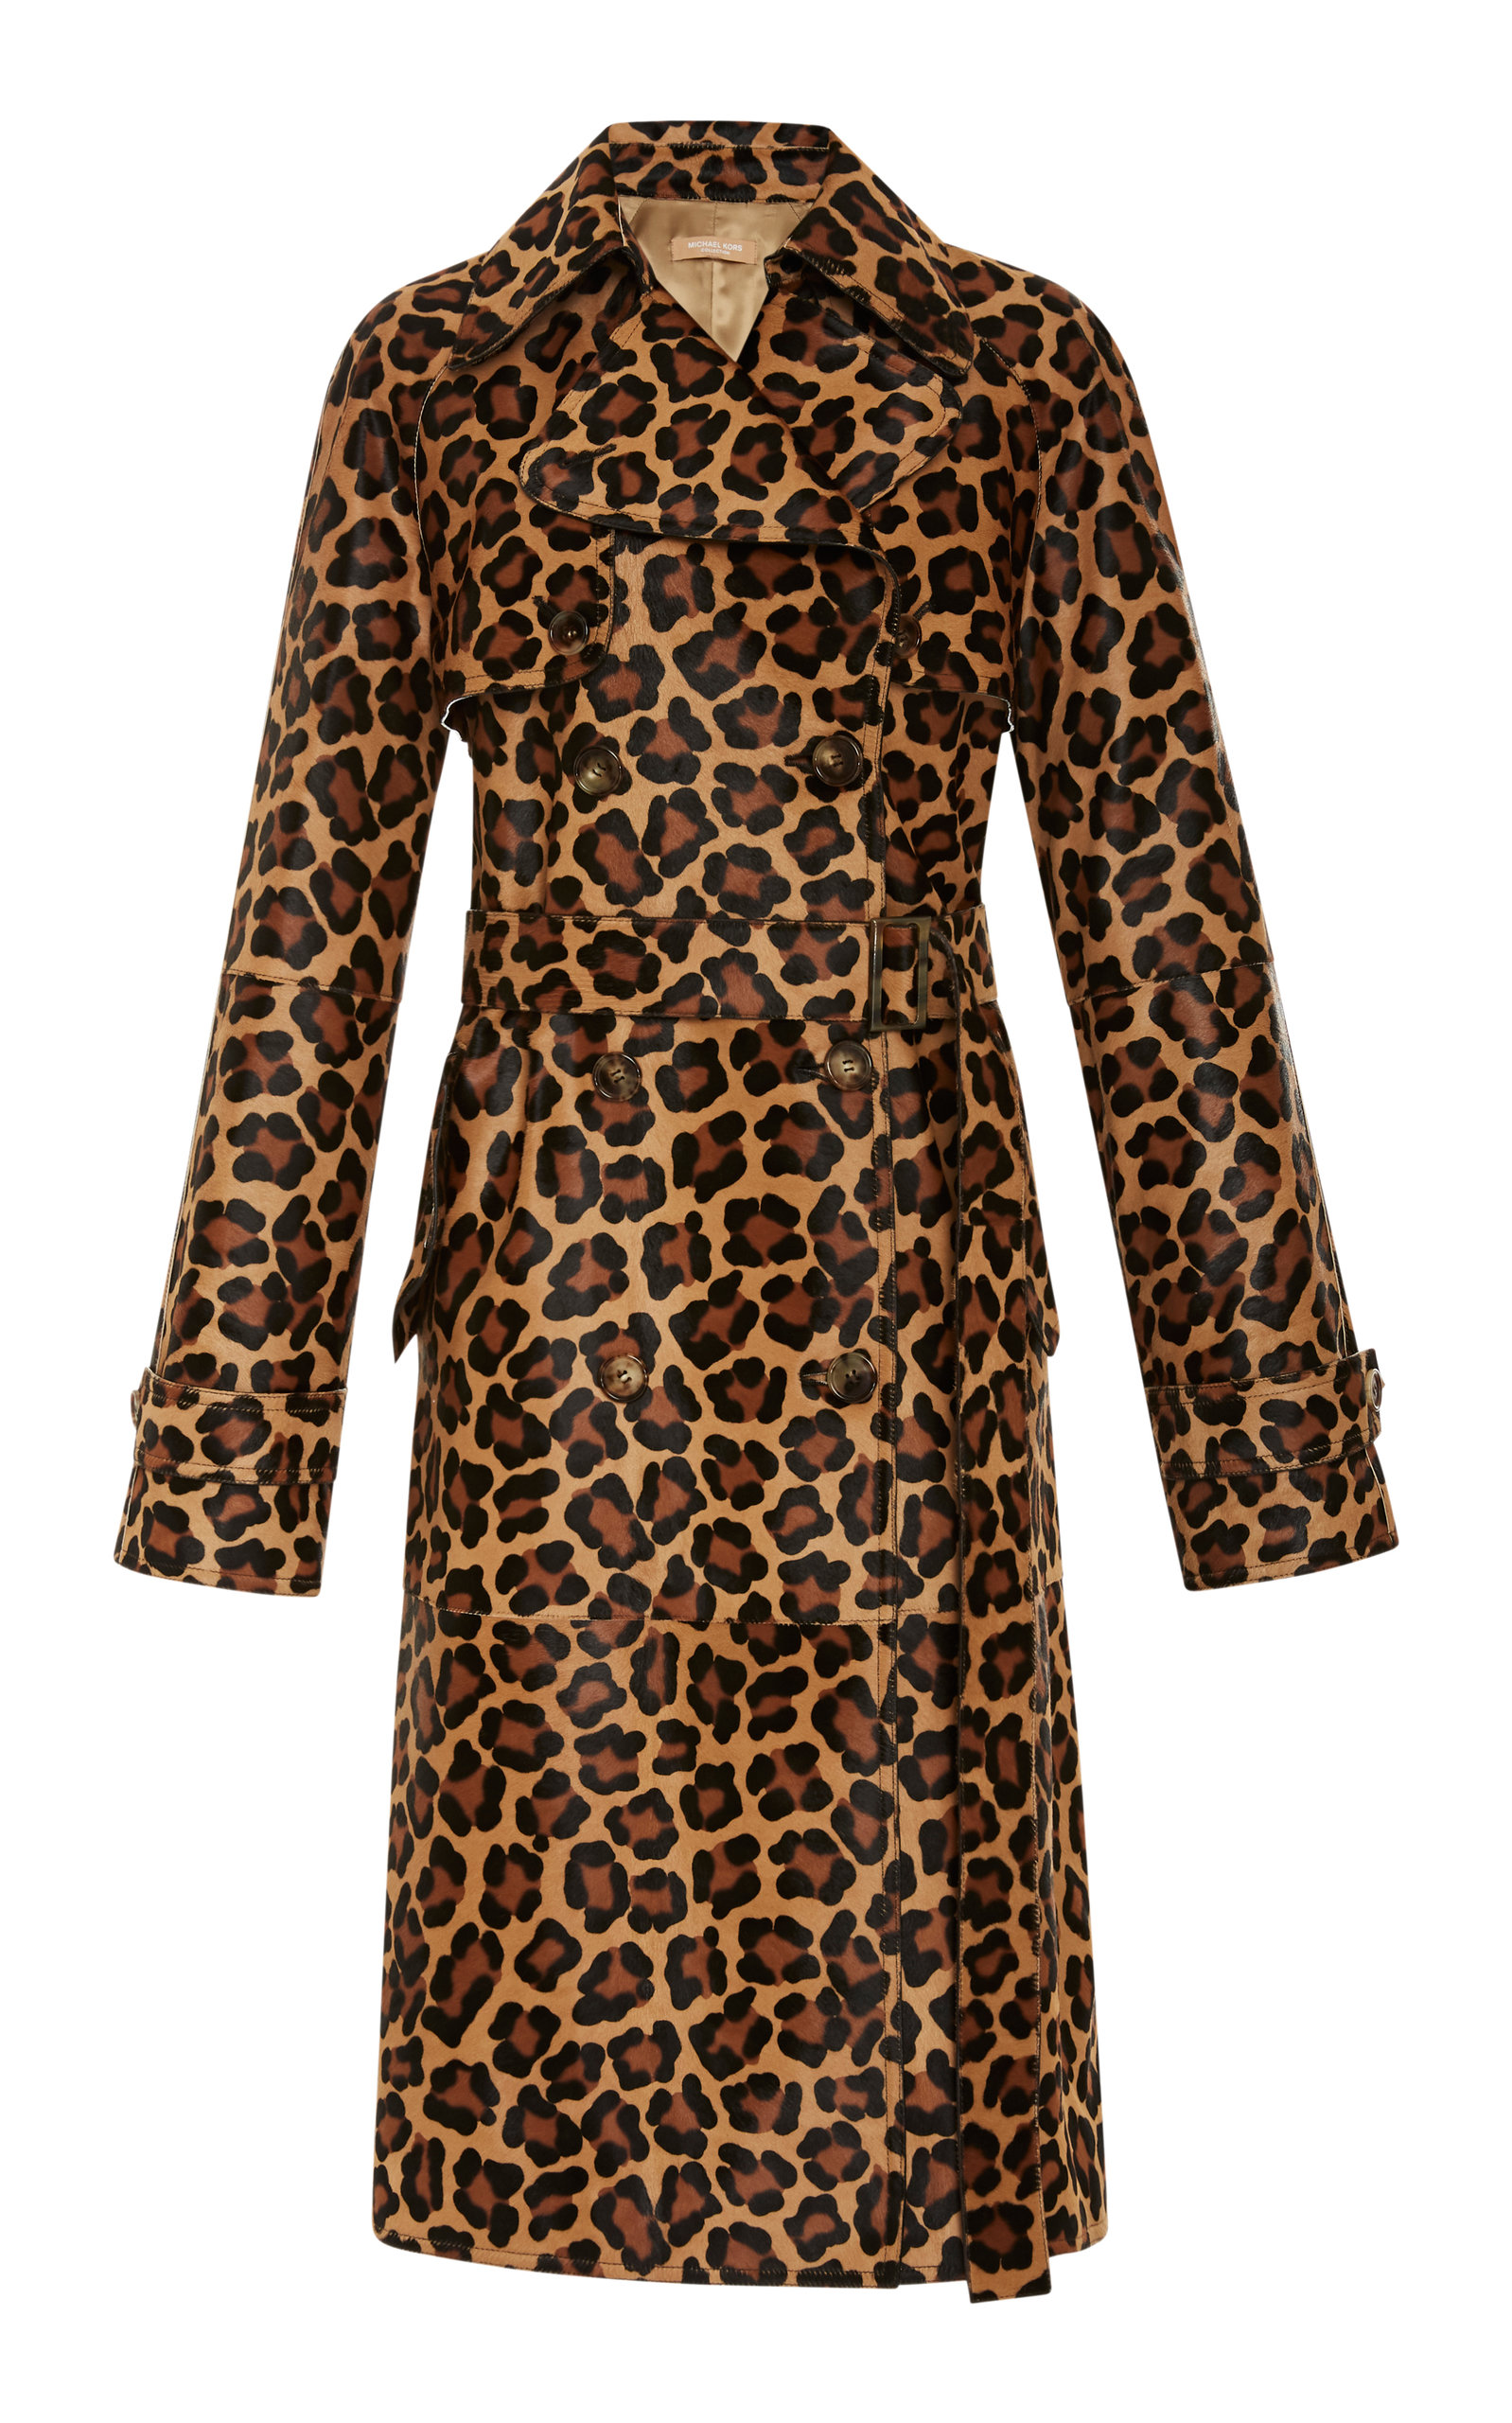 Leopard-Print Double-Breasted Haircalf Trench Coat in Animal